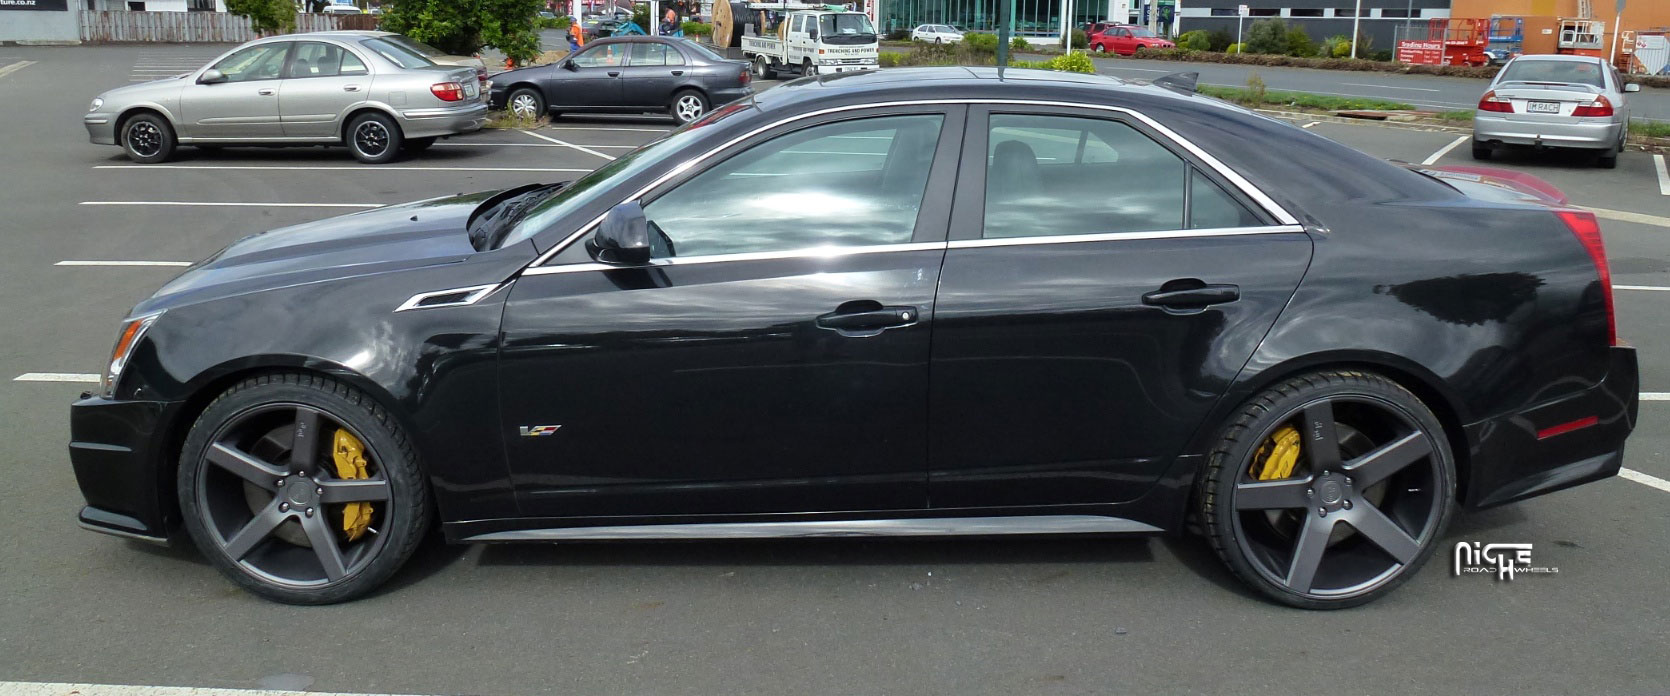 shoot v photo that did vehicle a on great mile wheels cadillac car hennessey in and amazing looks custom this cts quarter performance black is such forged seconds the